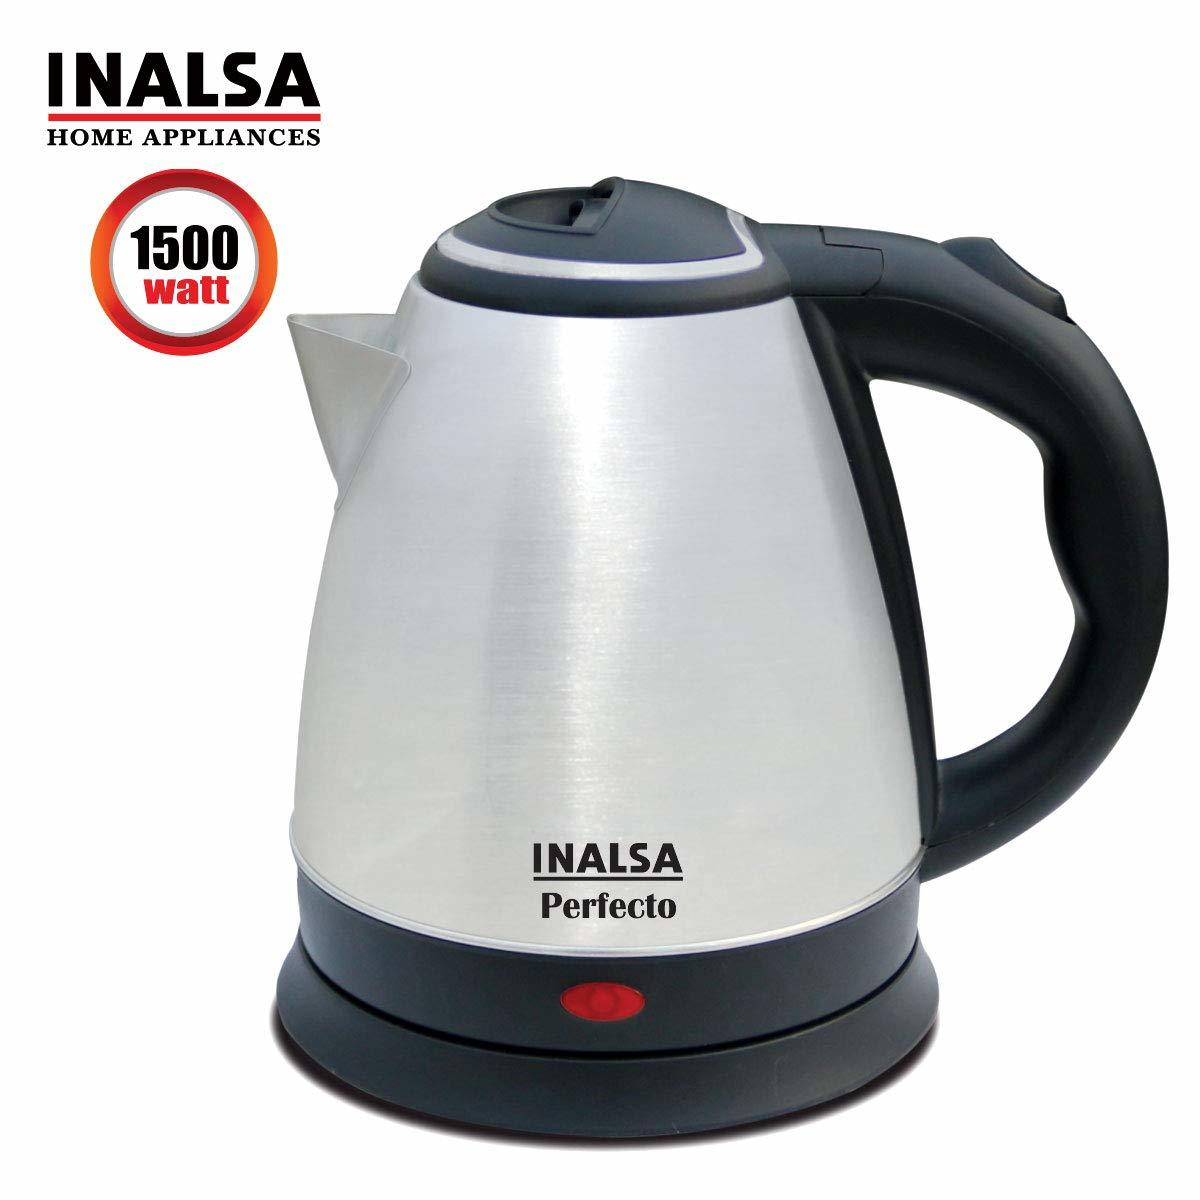 Inalsa Perfecto 1.5 Litre Electric Kettle